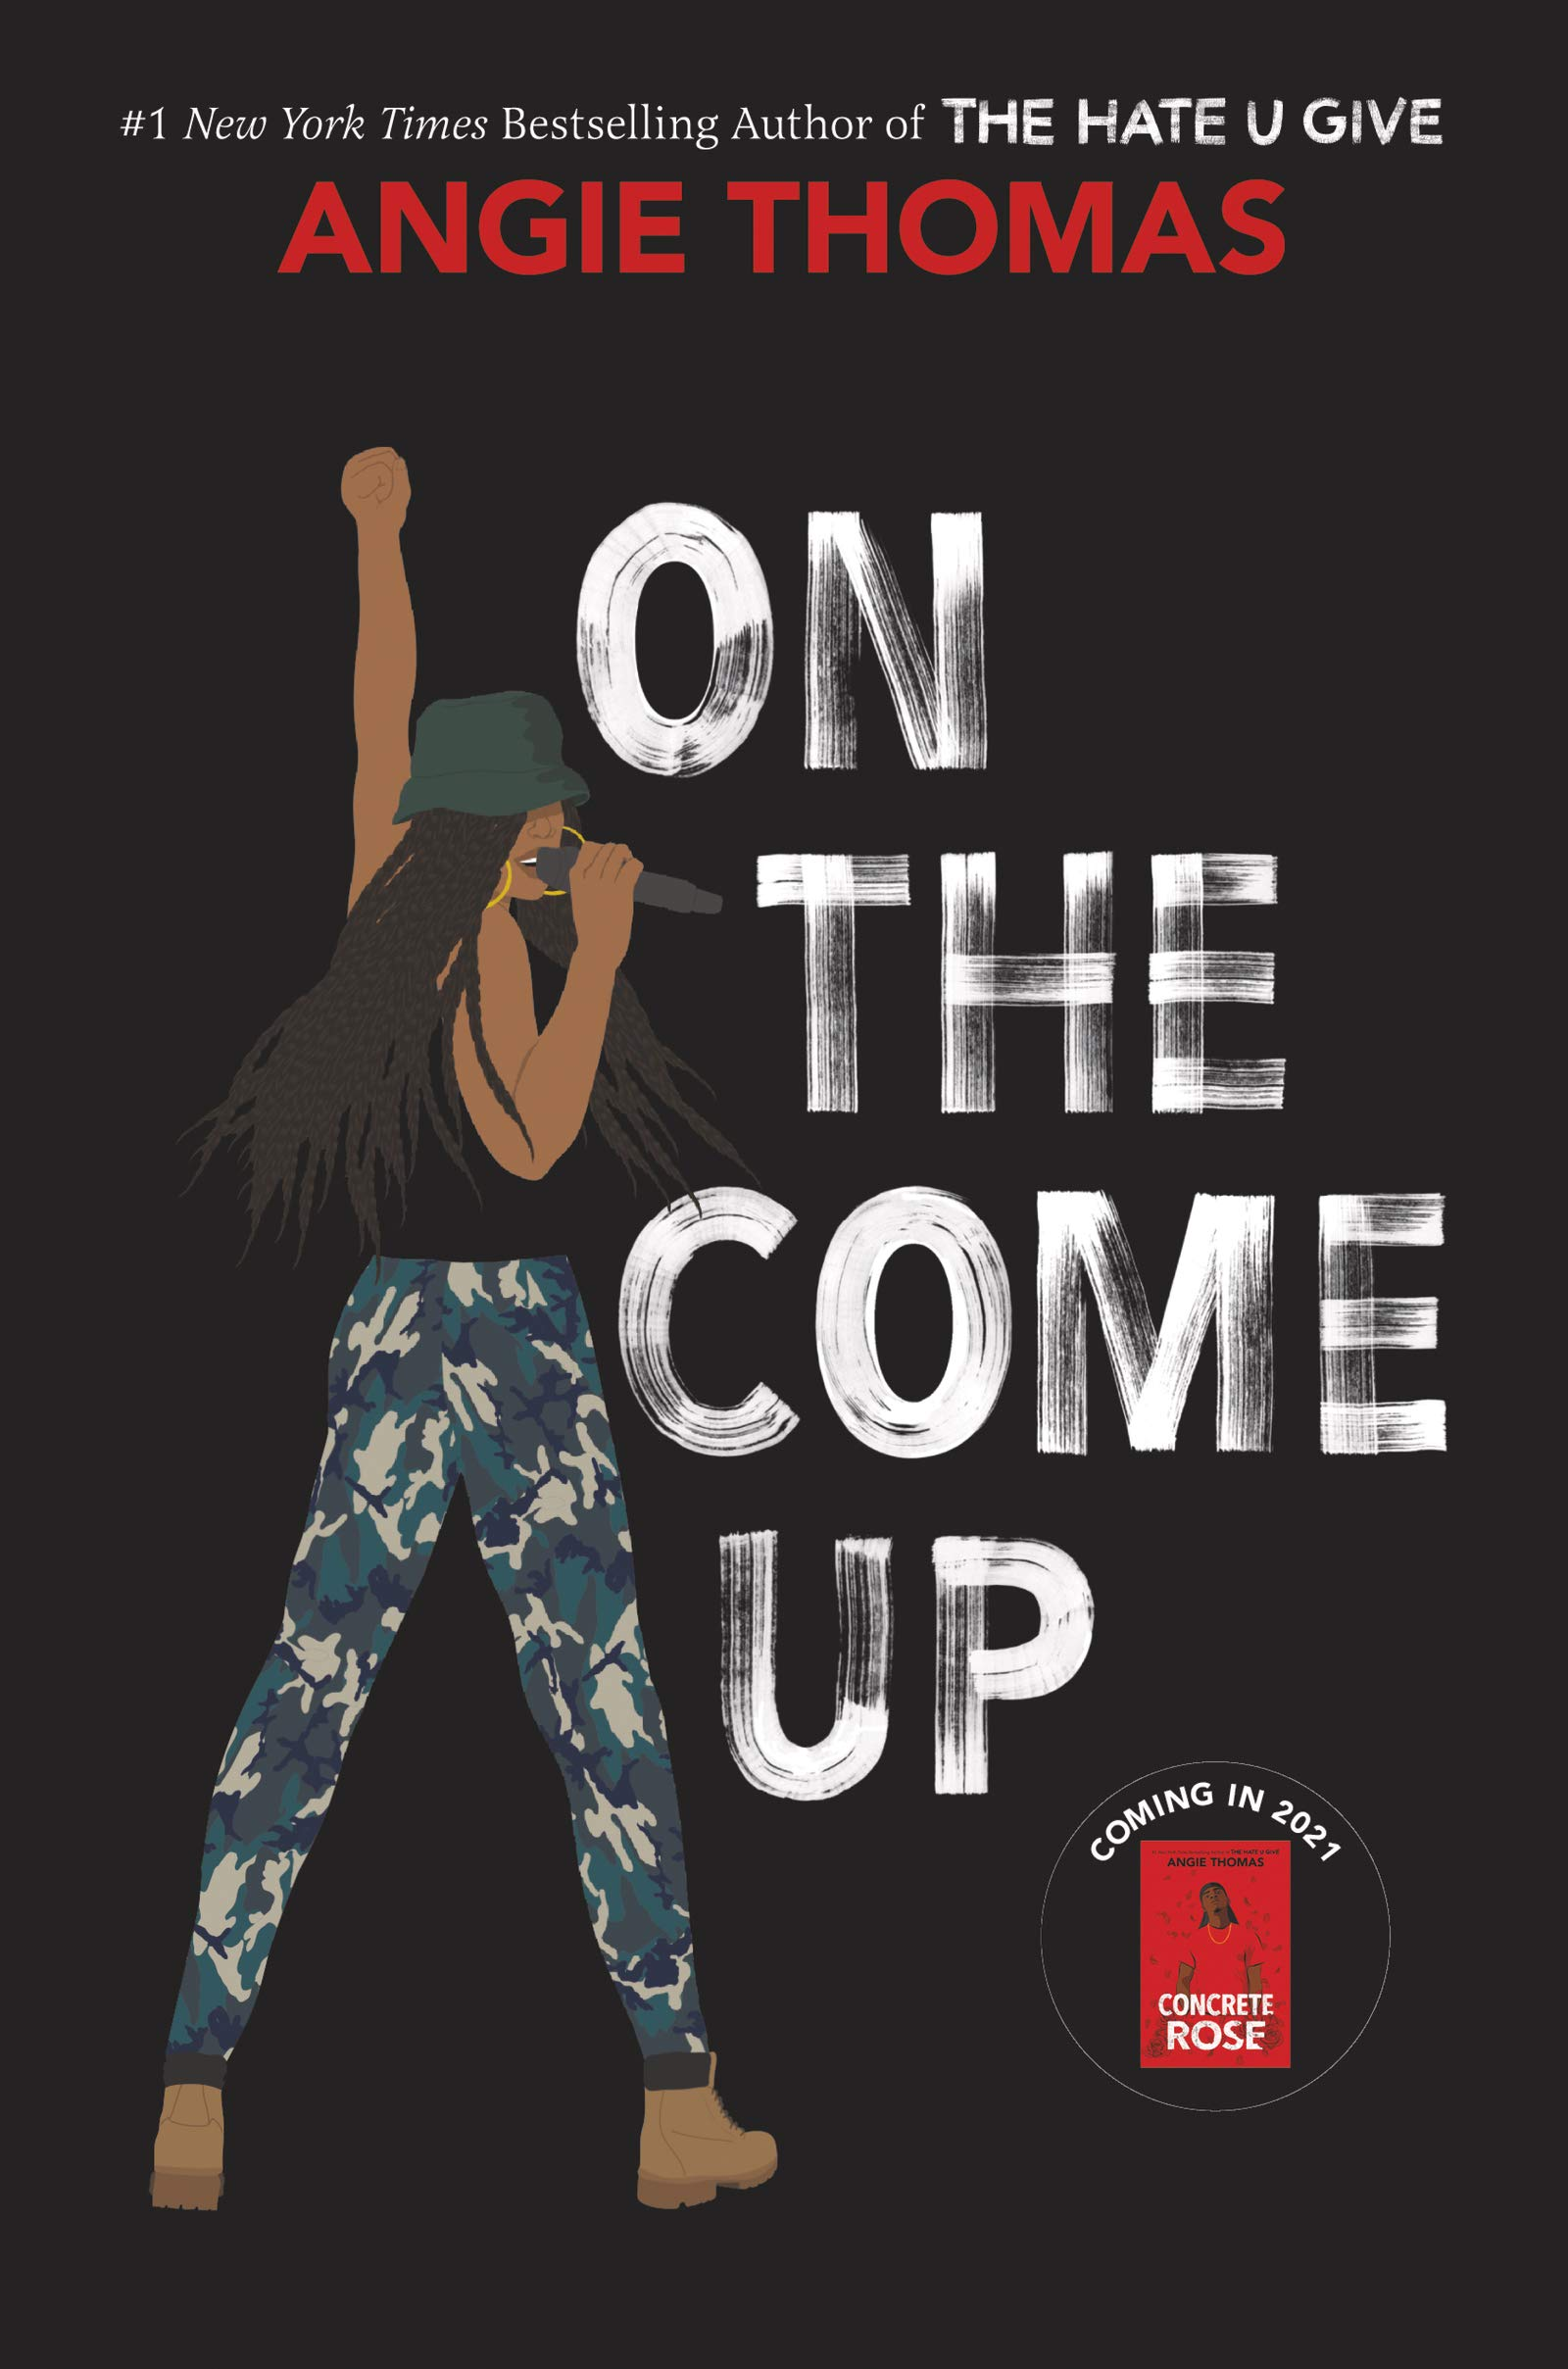 Amazon.com: On The Come Up (9780062498564): Thomas, Angie: Books